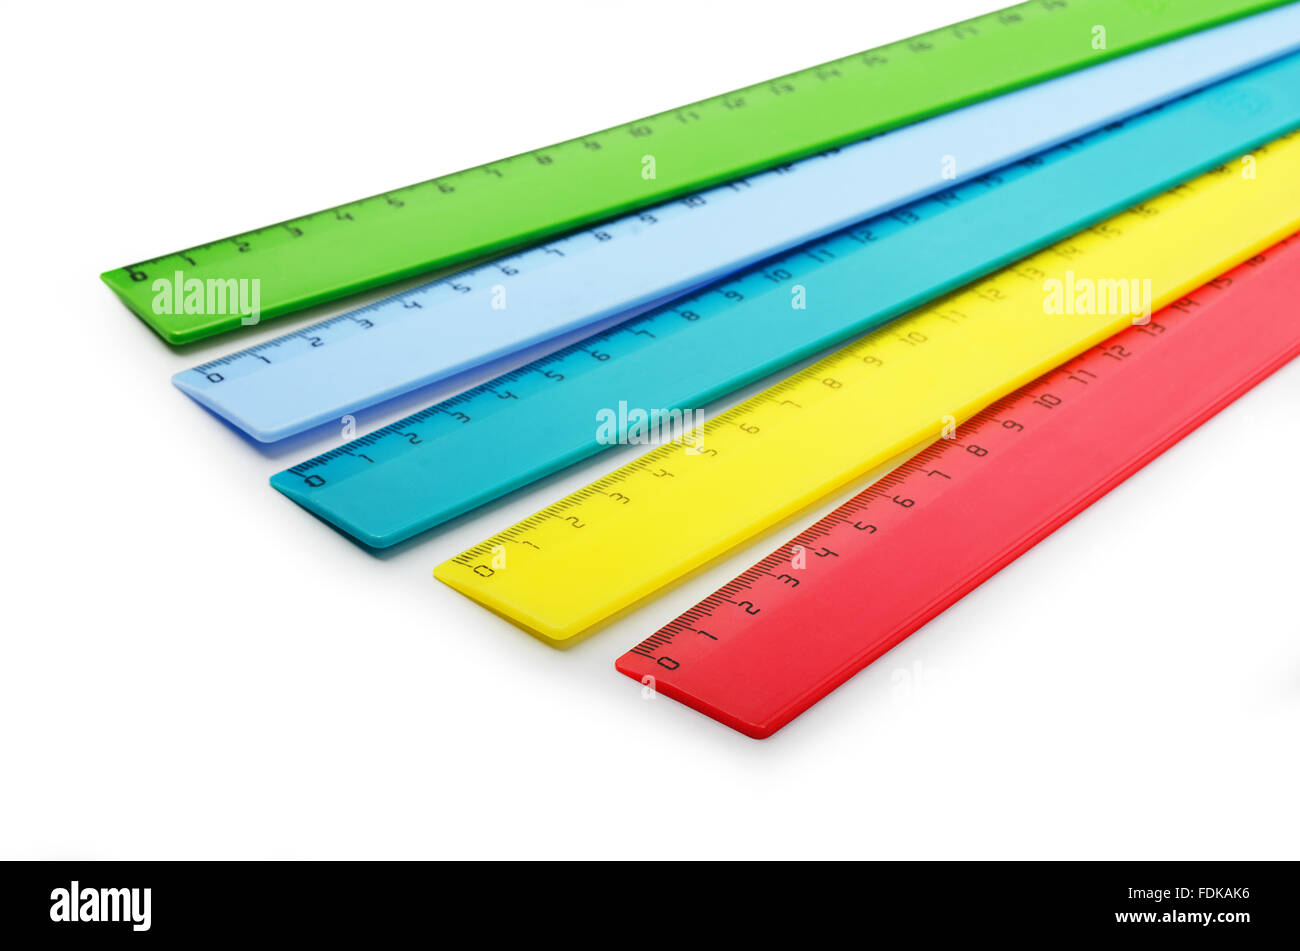 Multicolor plastic rulers on a white background - Stock Image